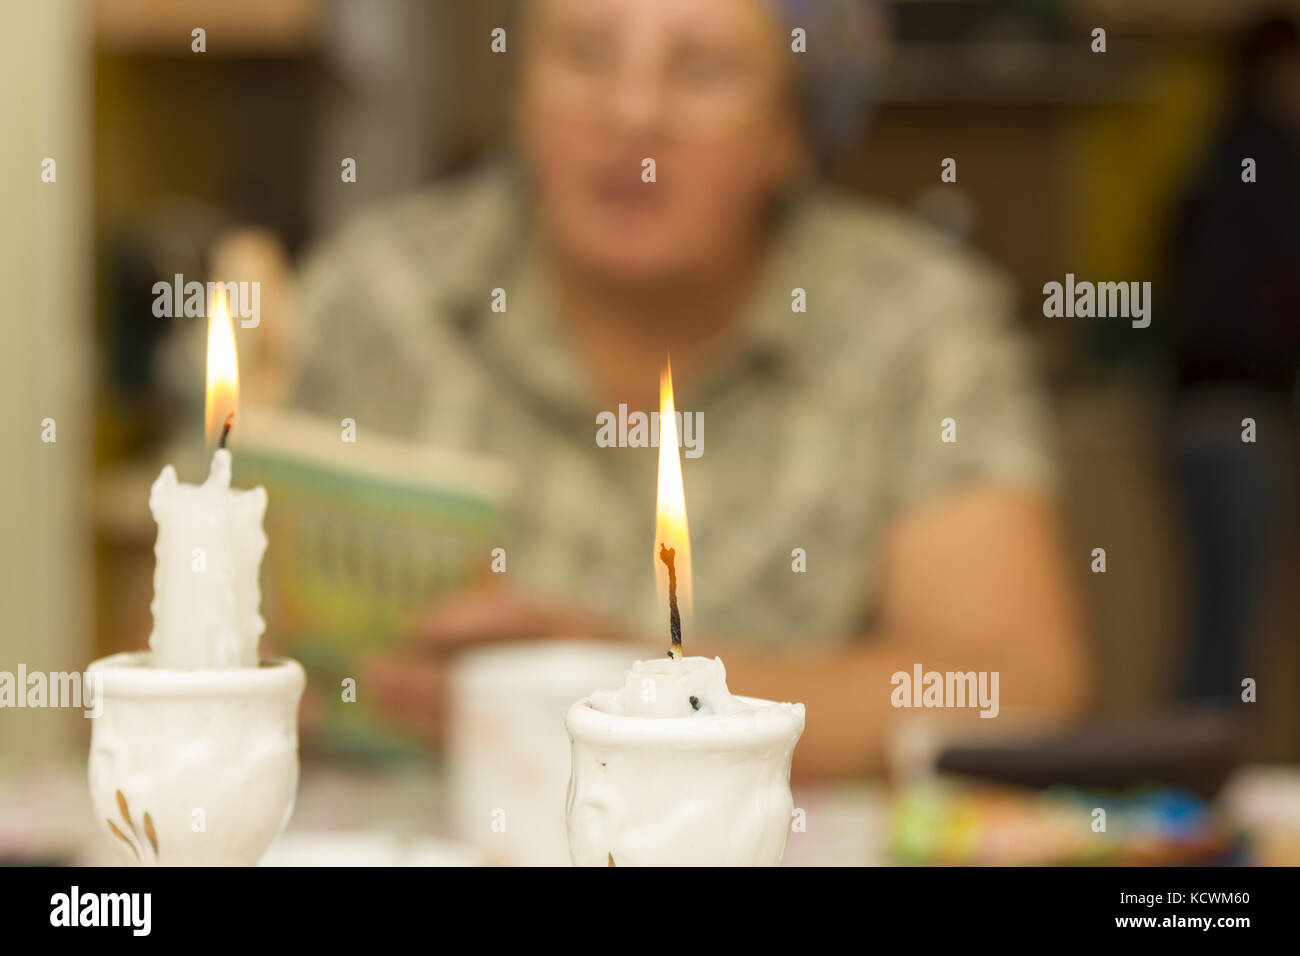 Two Shabbat Candles Against the background of a woman reading the Torah - Stock Image